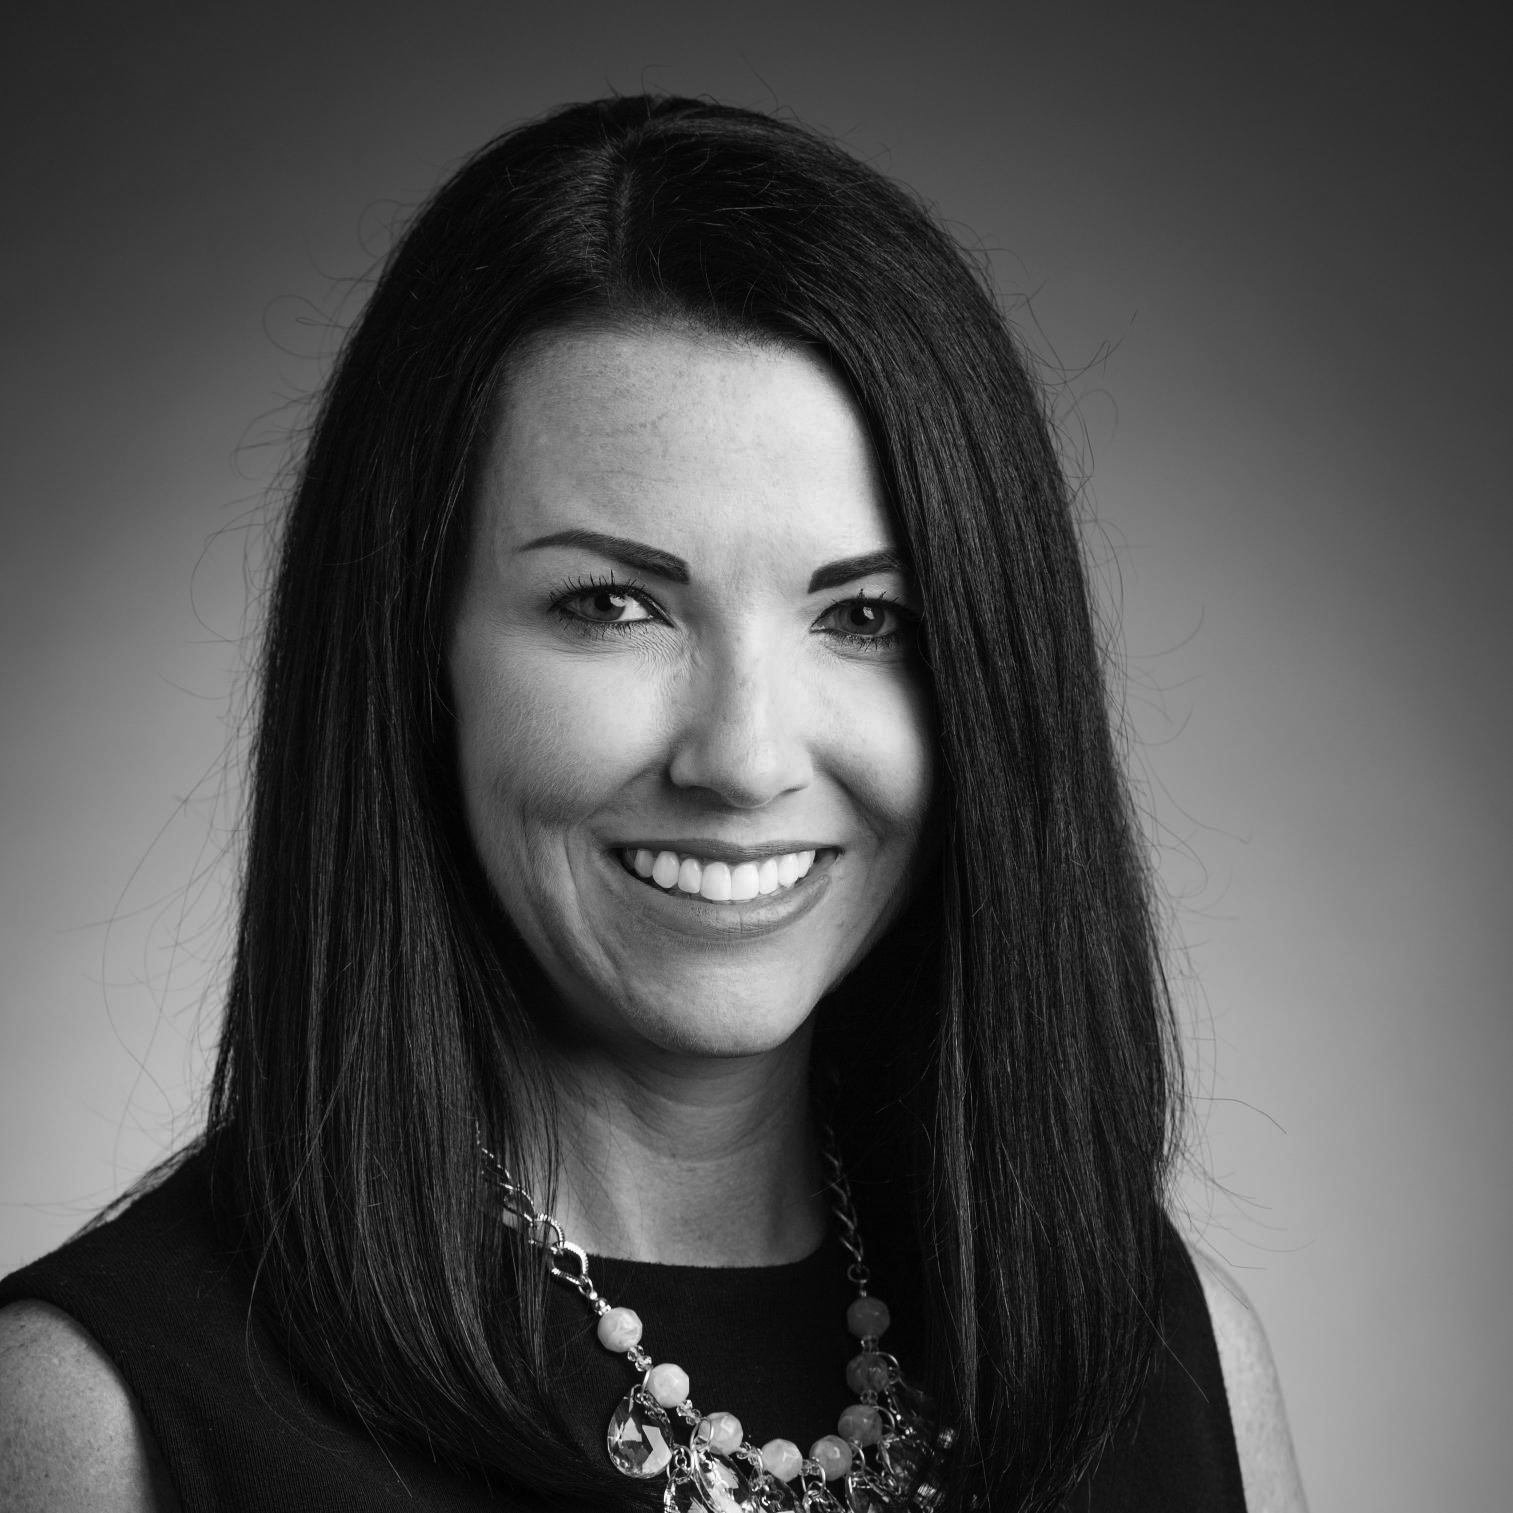 Jennifer Johnston Di Loreto - Jennifer Johnston Di Loreto is the senior director of Global Employer Branding within the Employee Success organization at Salesforce, which has been named #1 on the FORTUNE